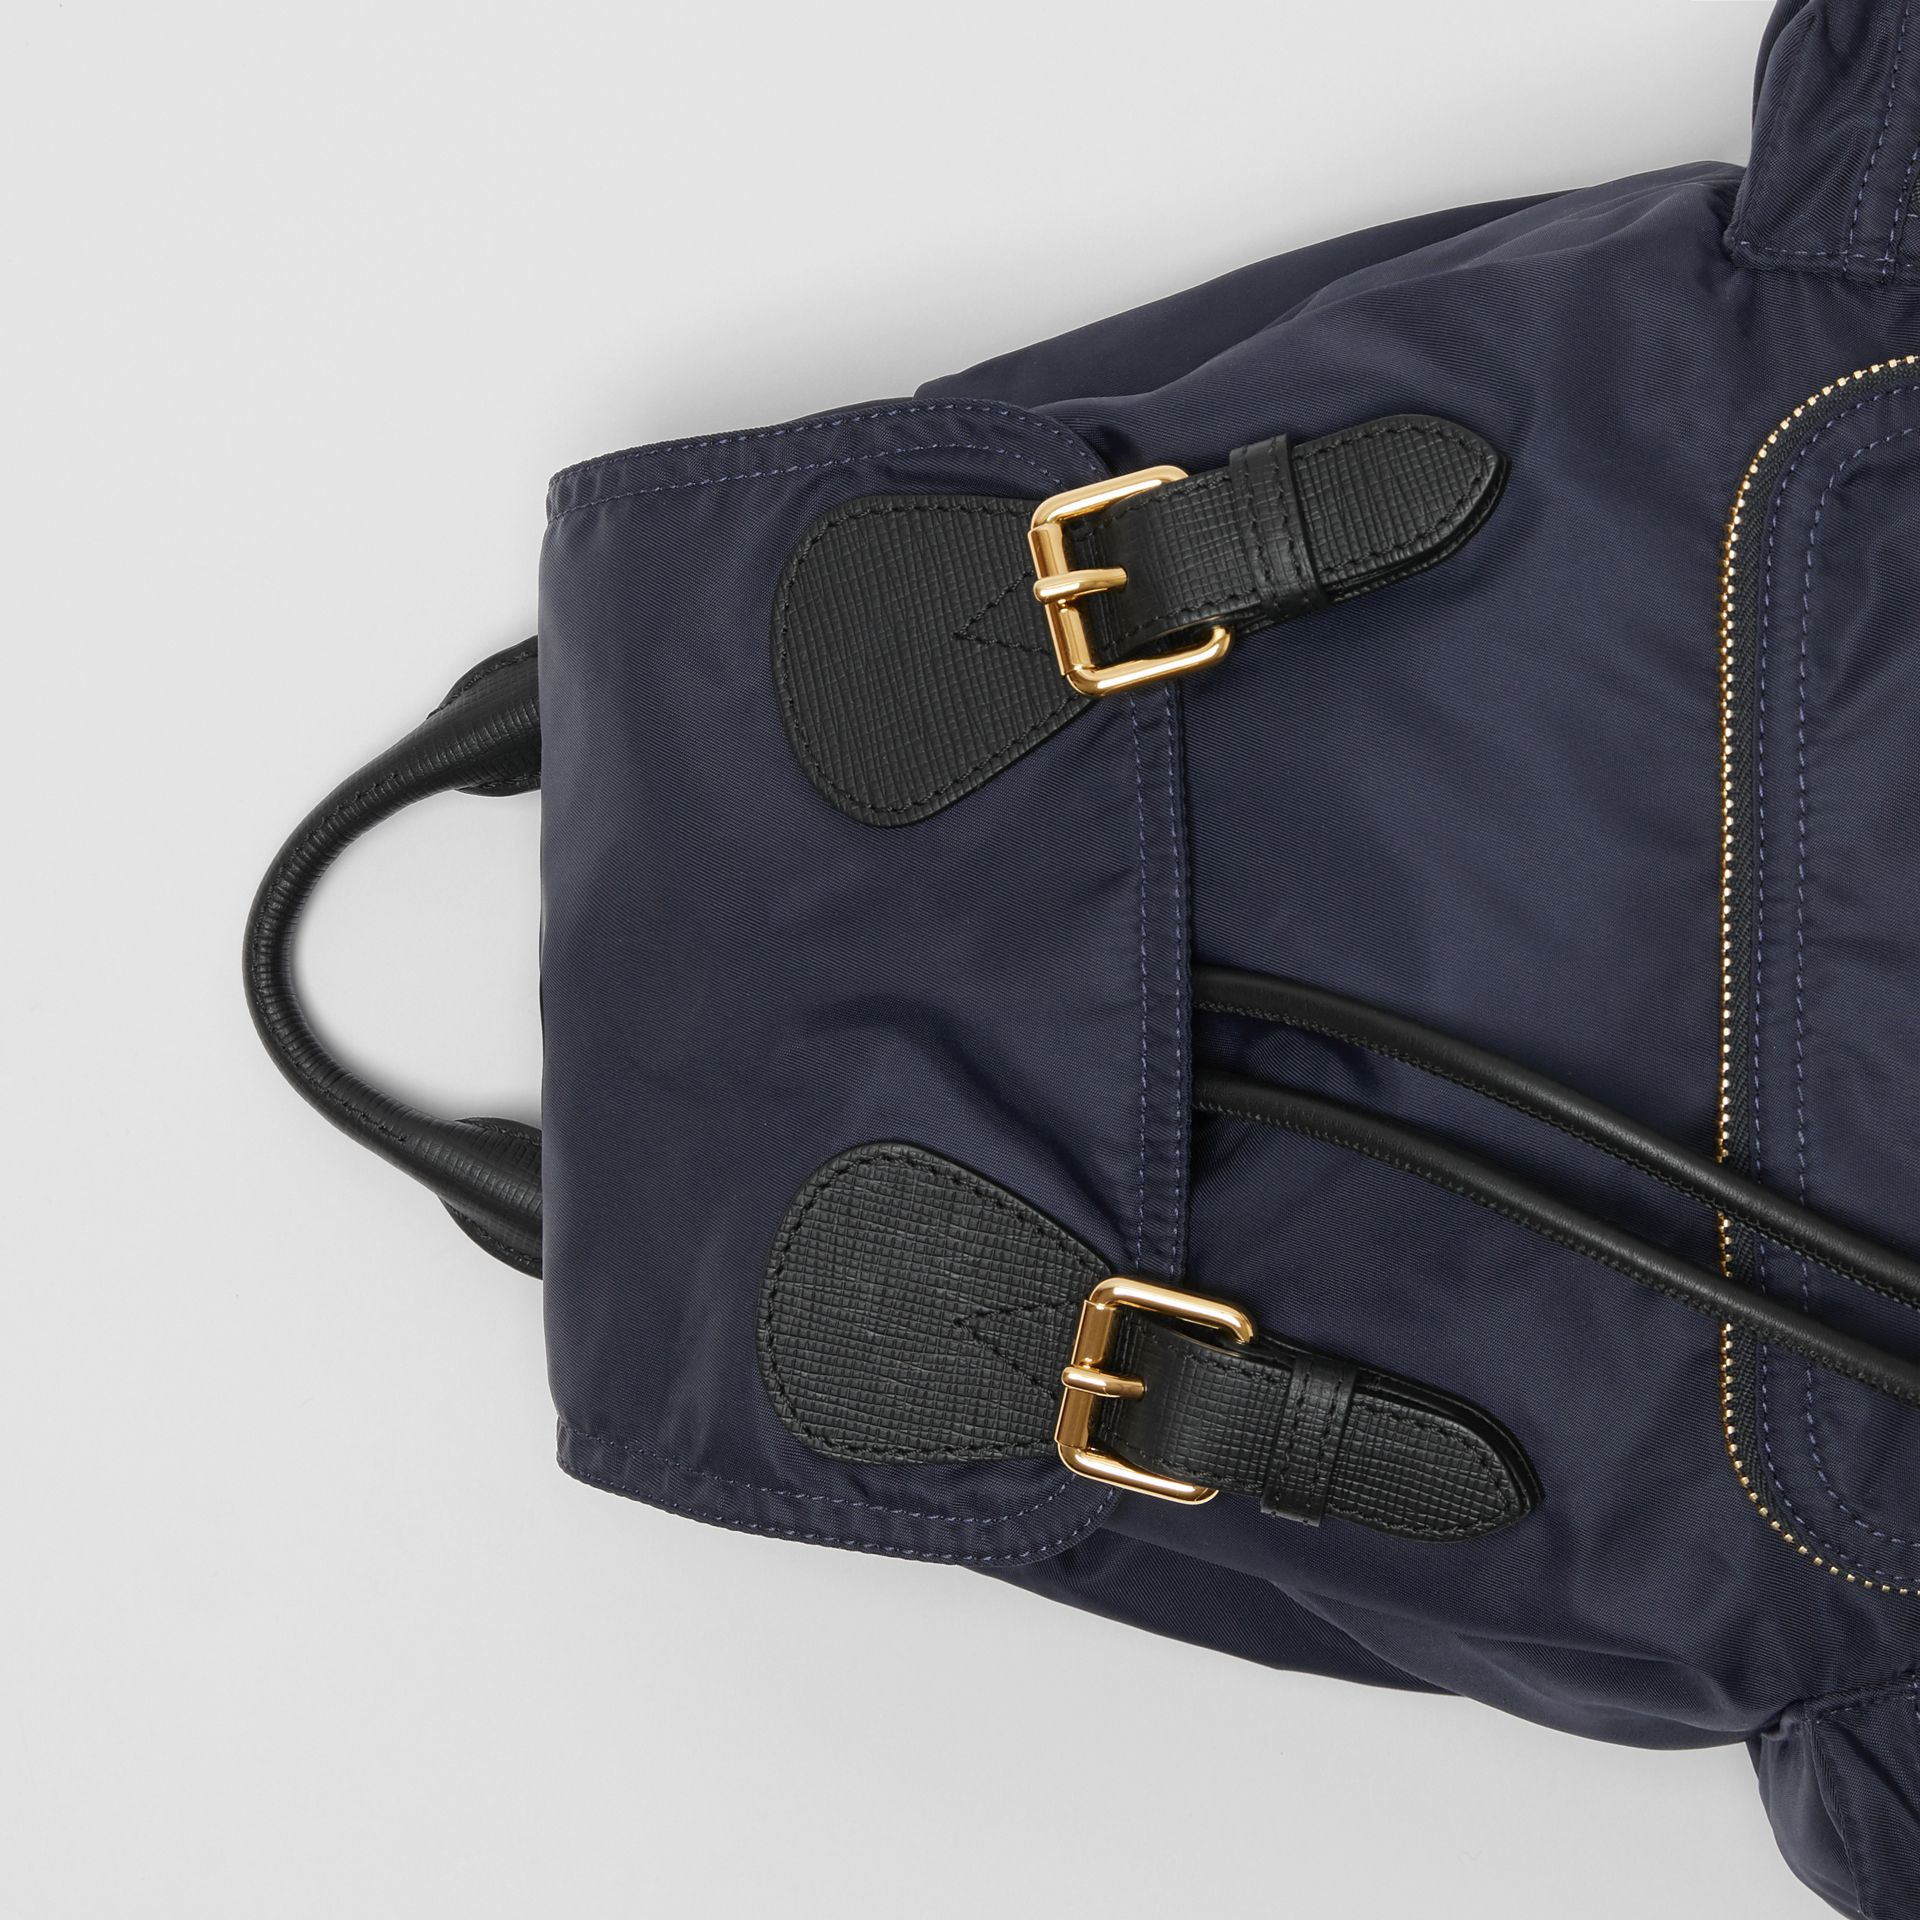 Zaino The Rucksack medio in nylon tecnico e pelle (Blu Inchiostro) - Donna | Burberry - immagine della galleria 3